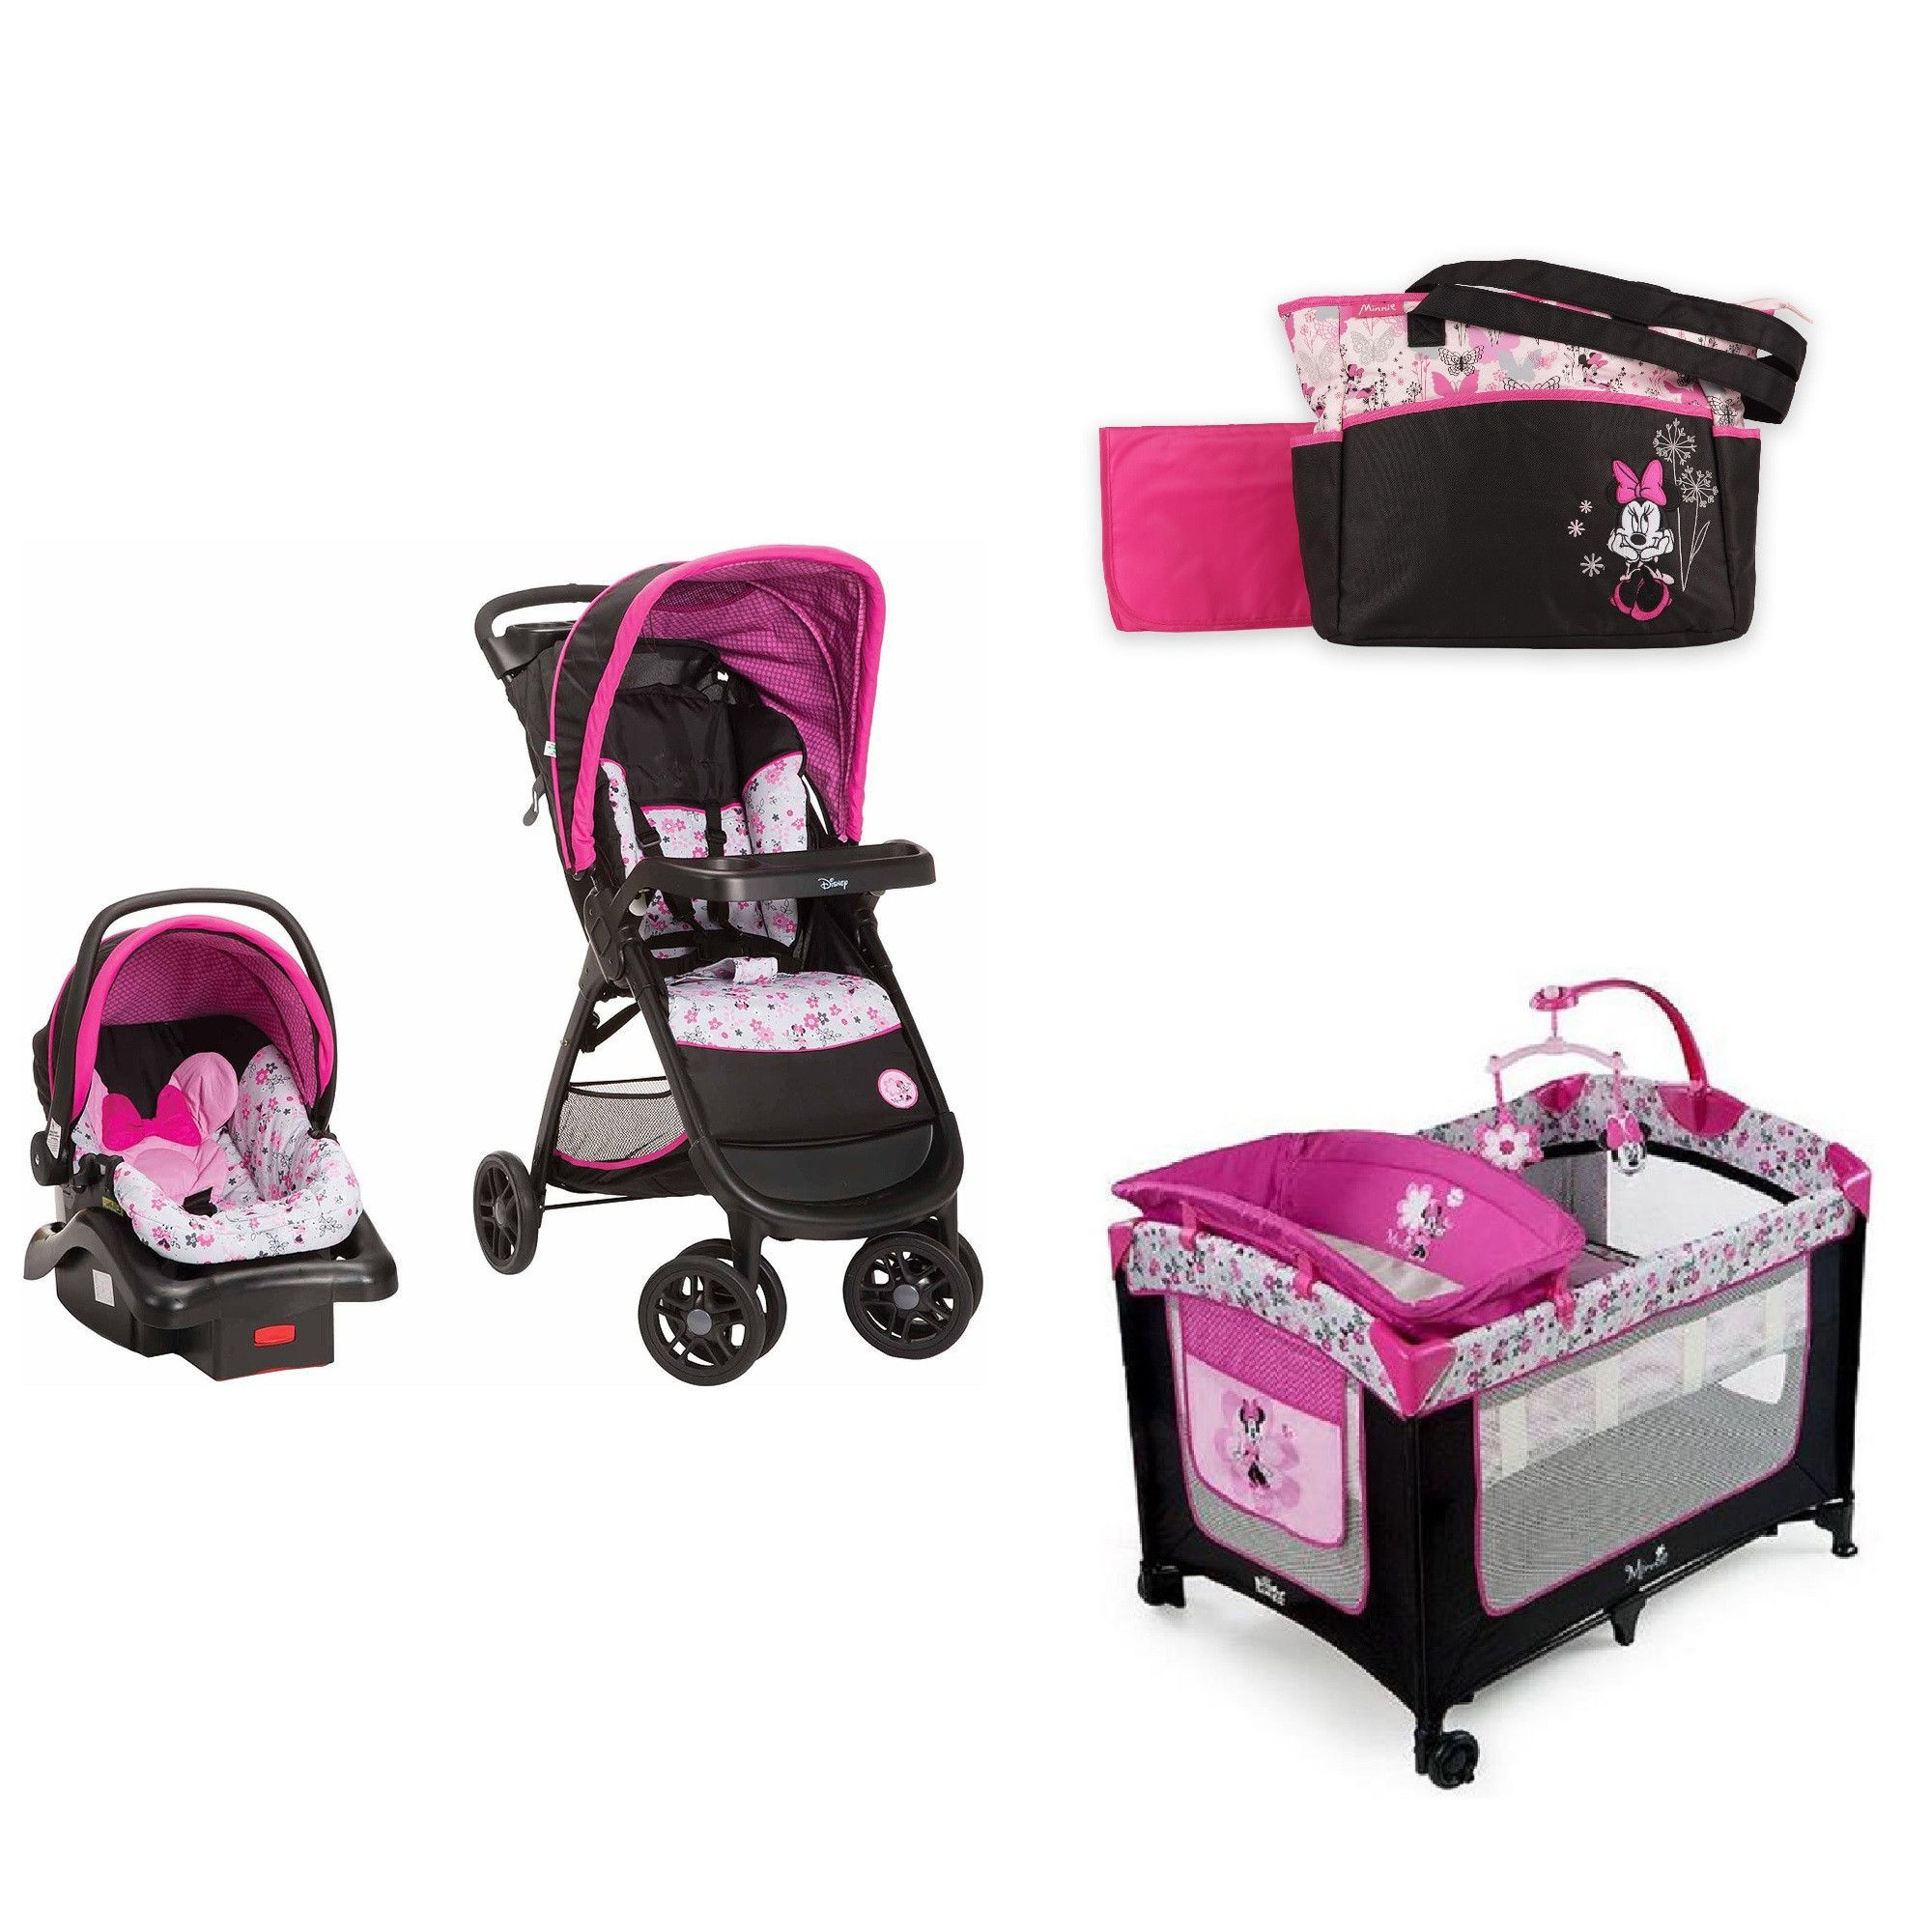 Minnie Mouse Infant Car Seat And Stroller Disney Minnie Baby Bundle Baby Gear Bundle Collection